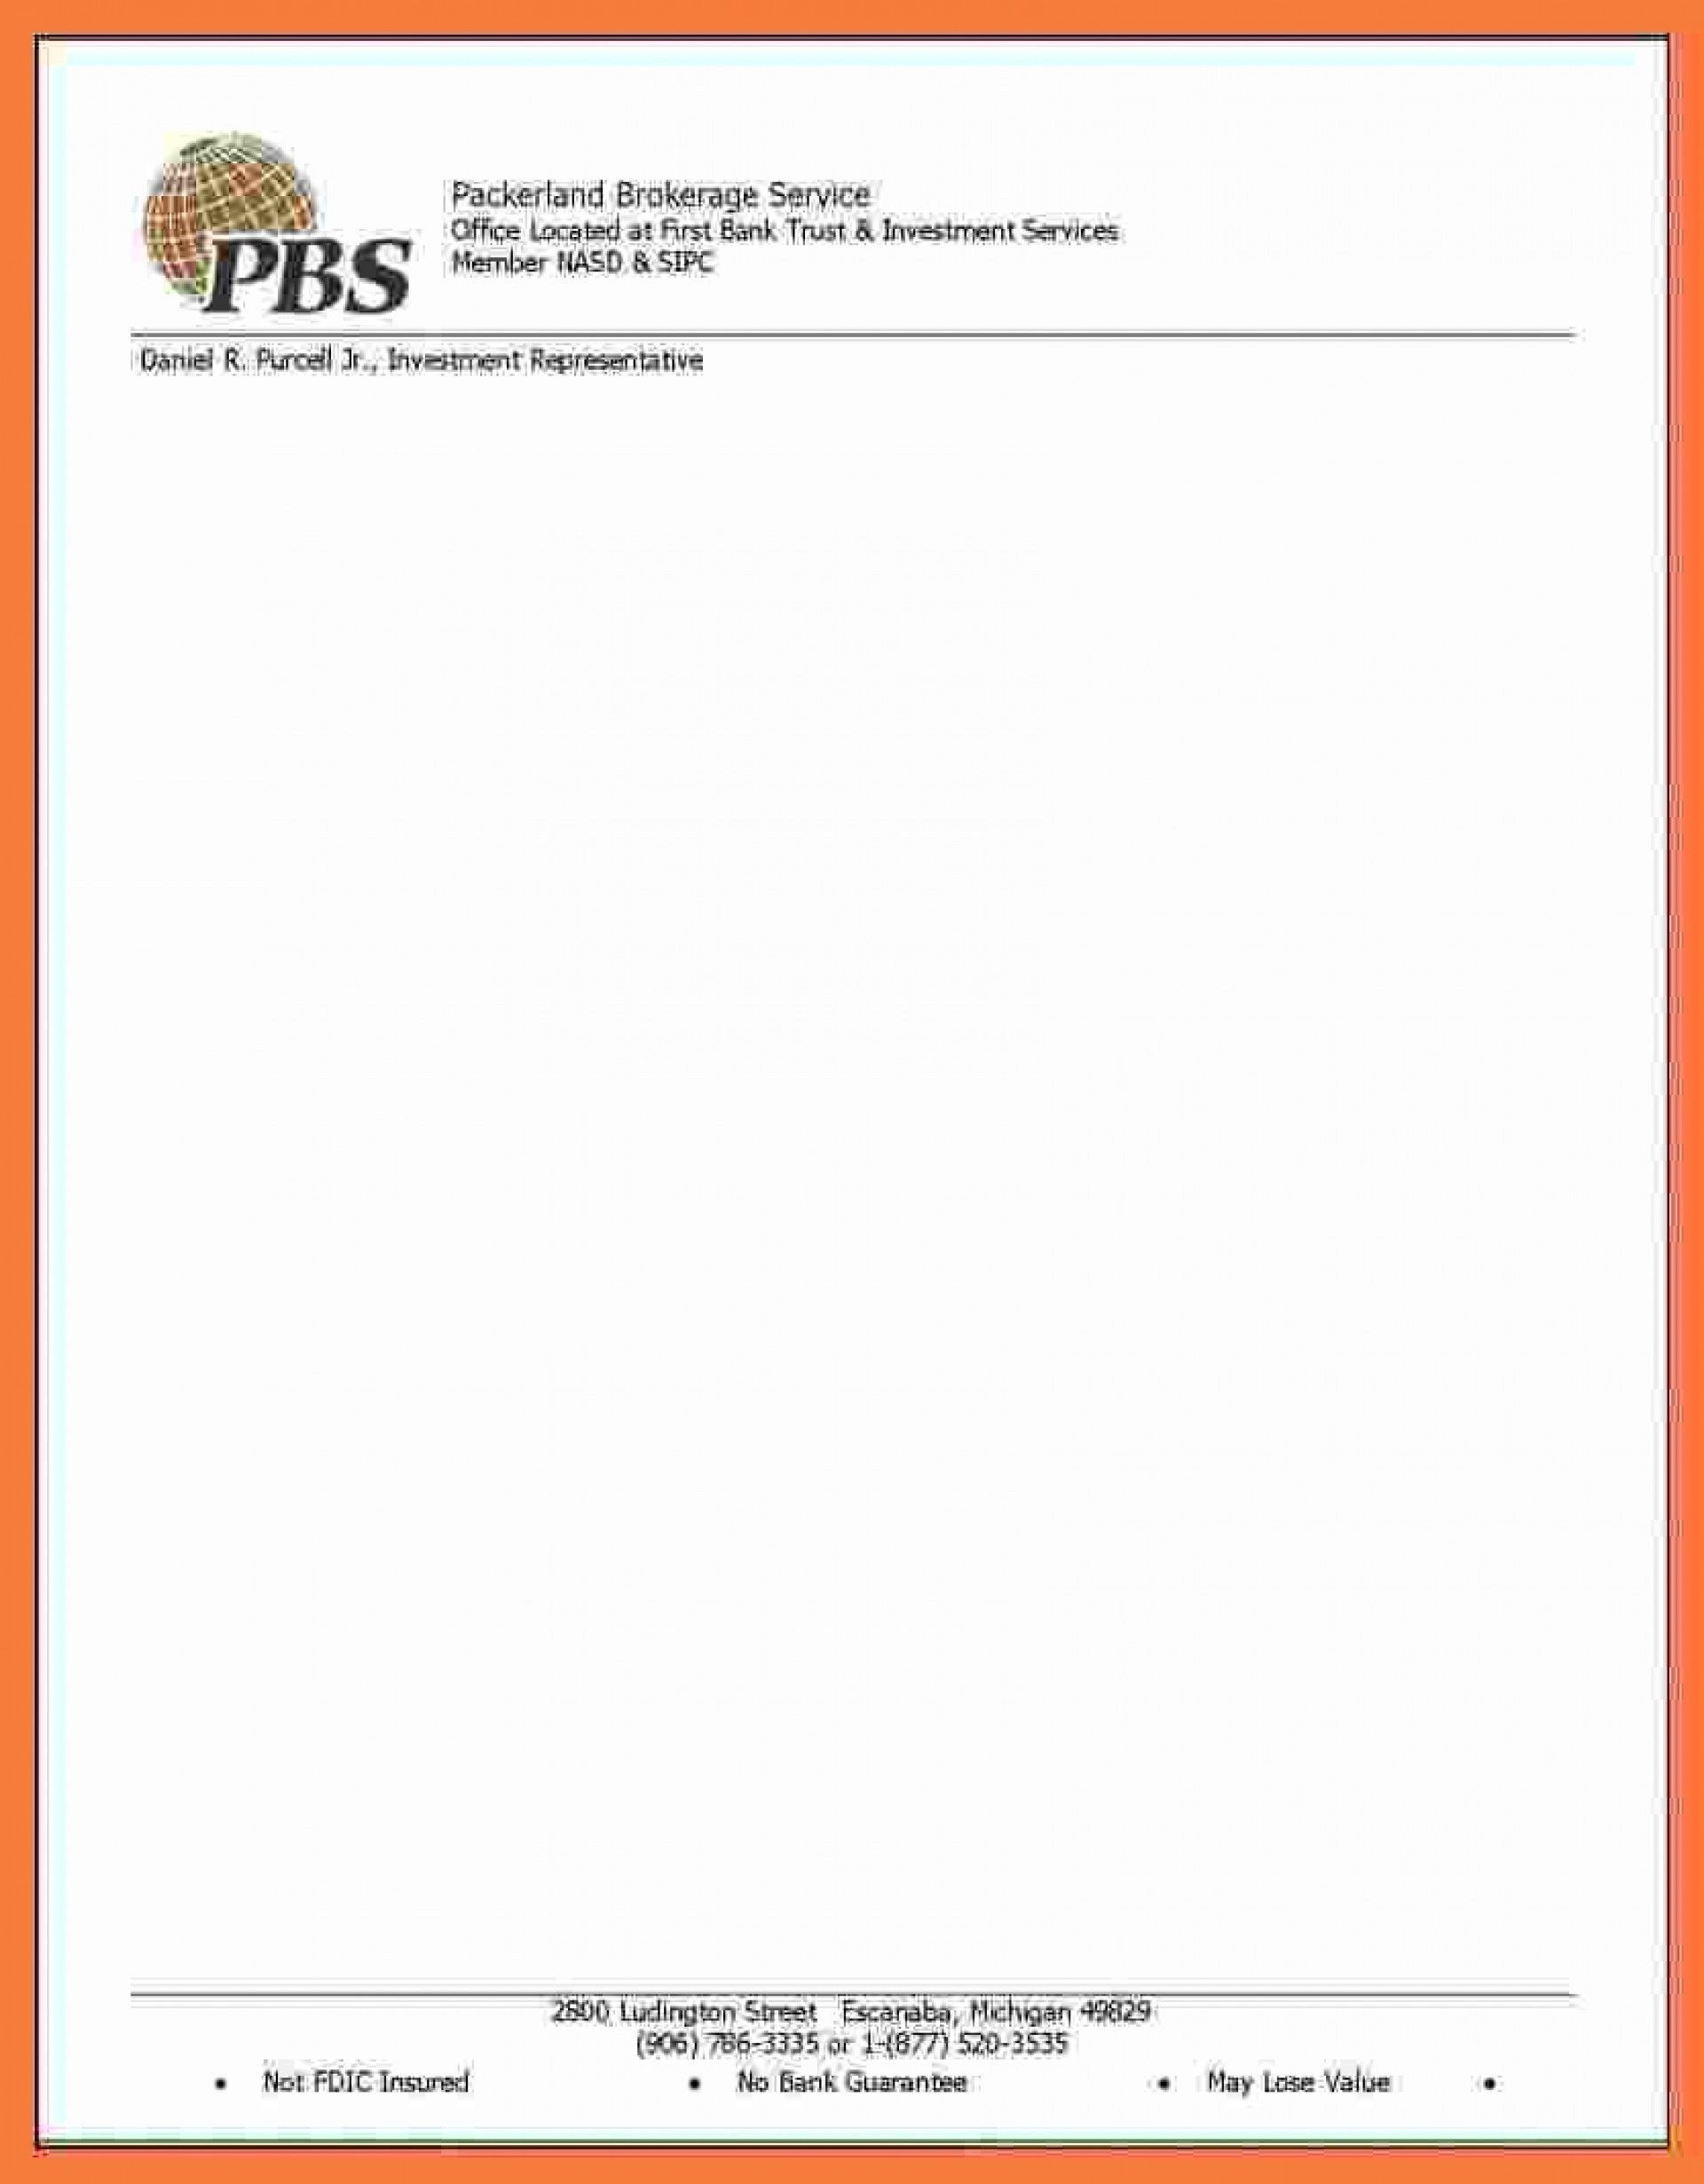 002 Shocking Letterhead Example Free Download High Resolution  Advocate Format Hospital In Word Pdf1920